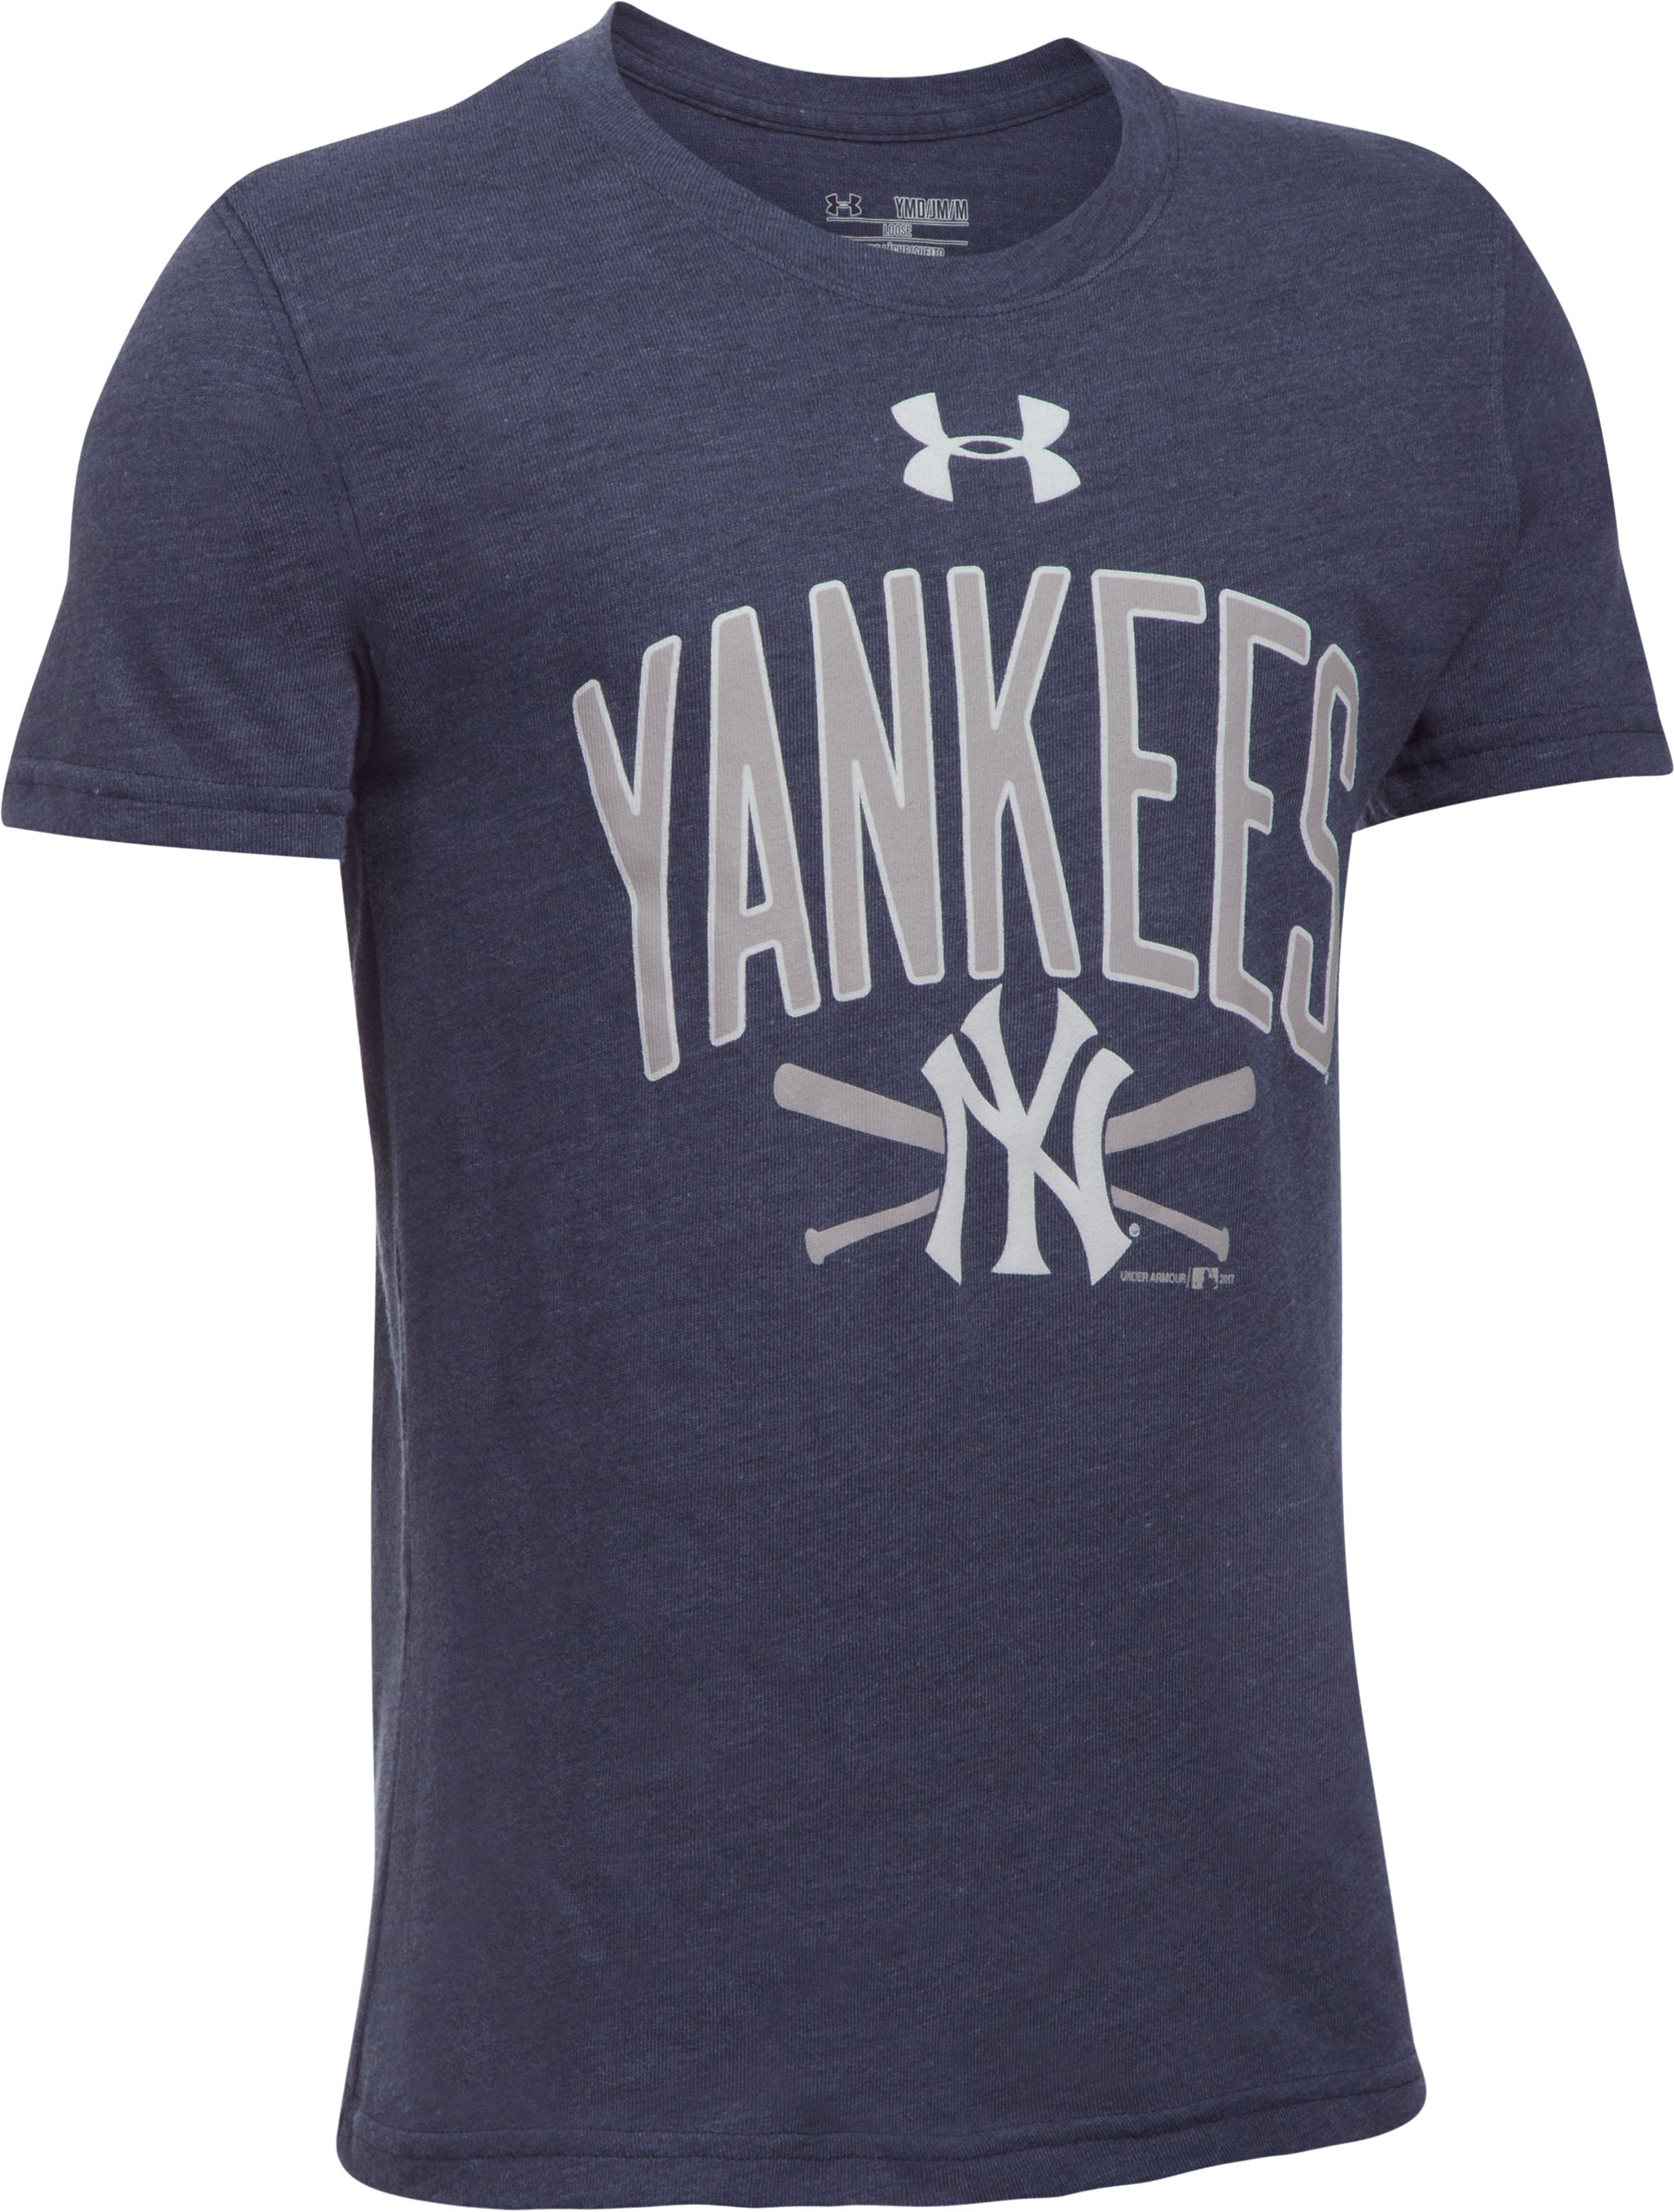 Boys' New York Yankees Tri-Blend T-Shirt, Midnight Navy, undefined